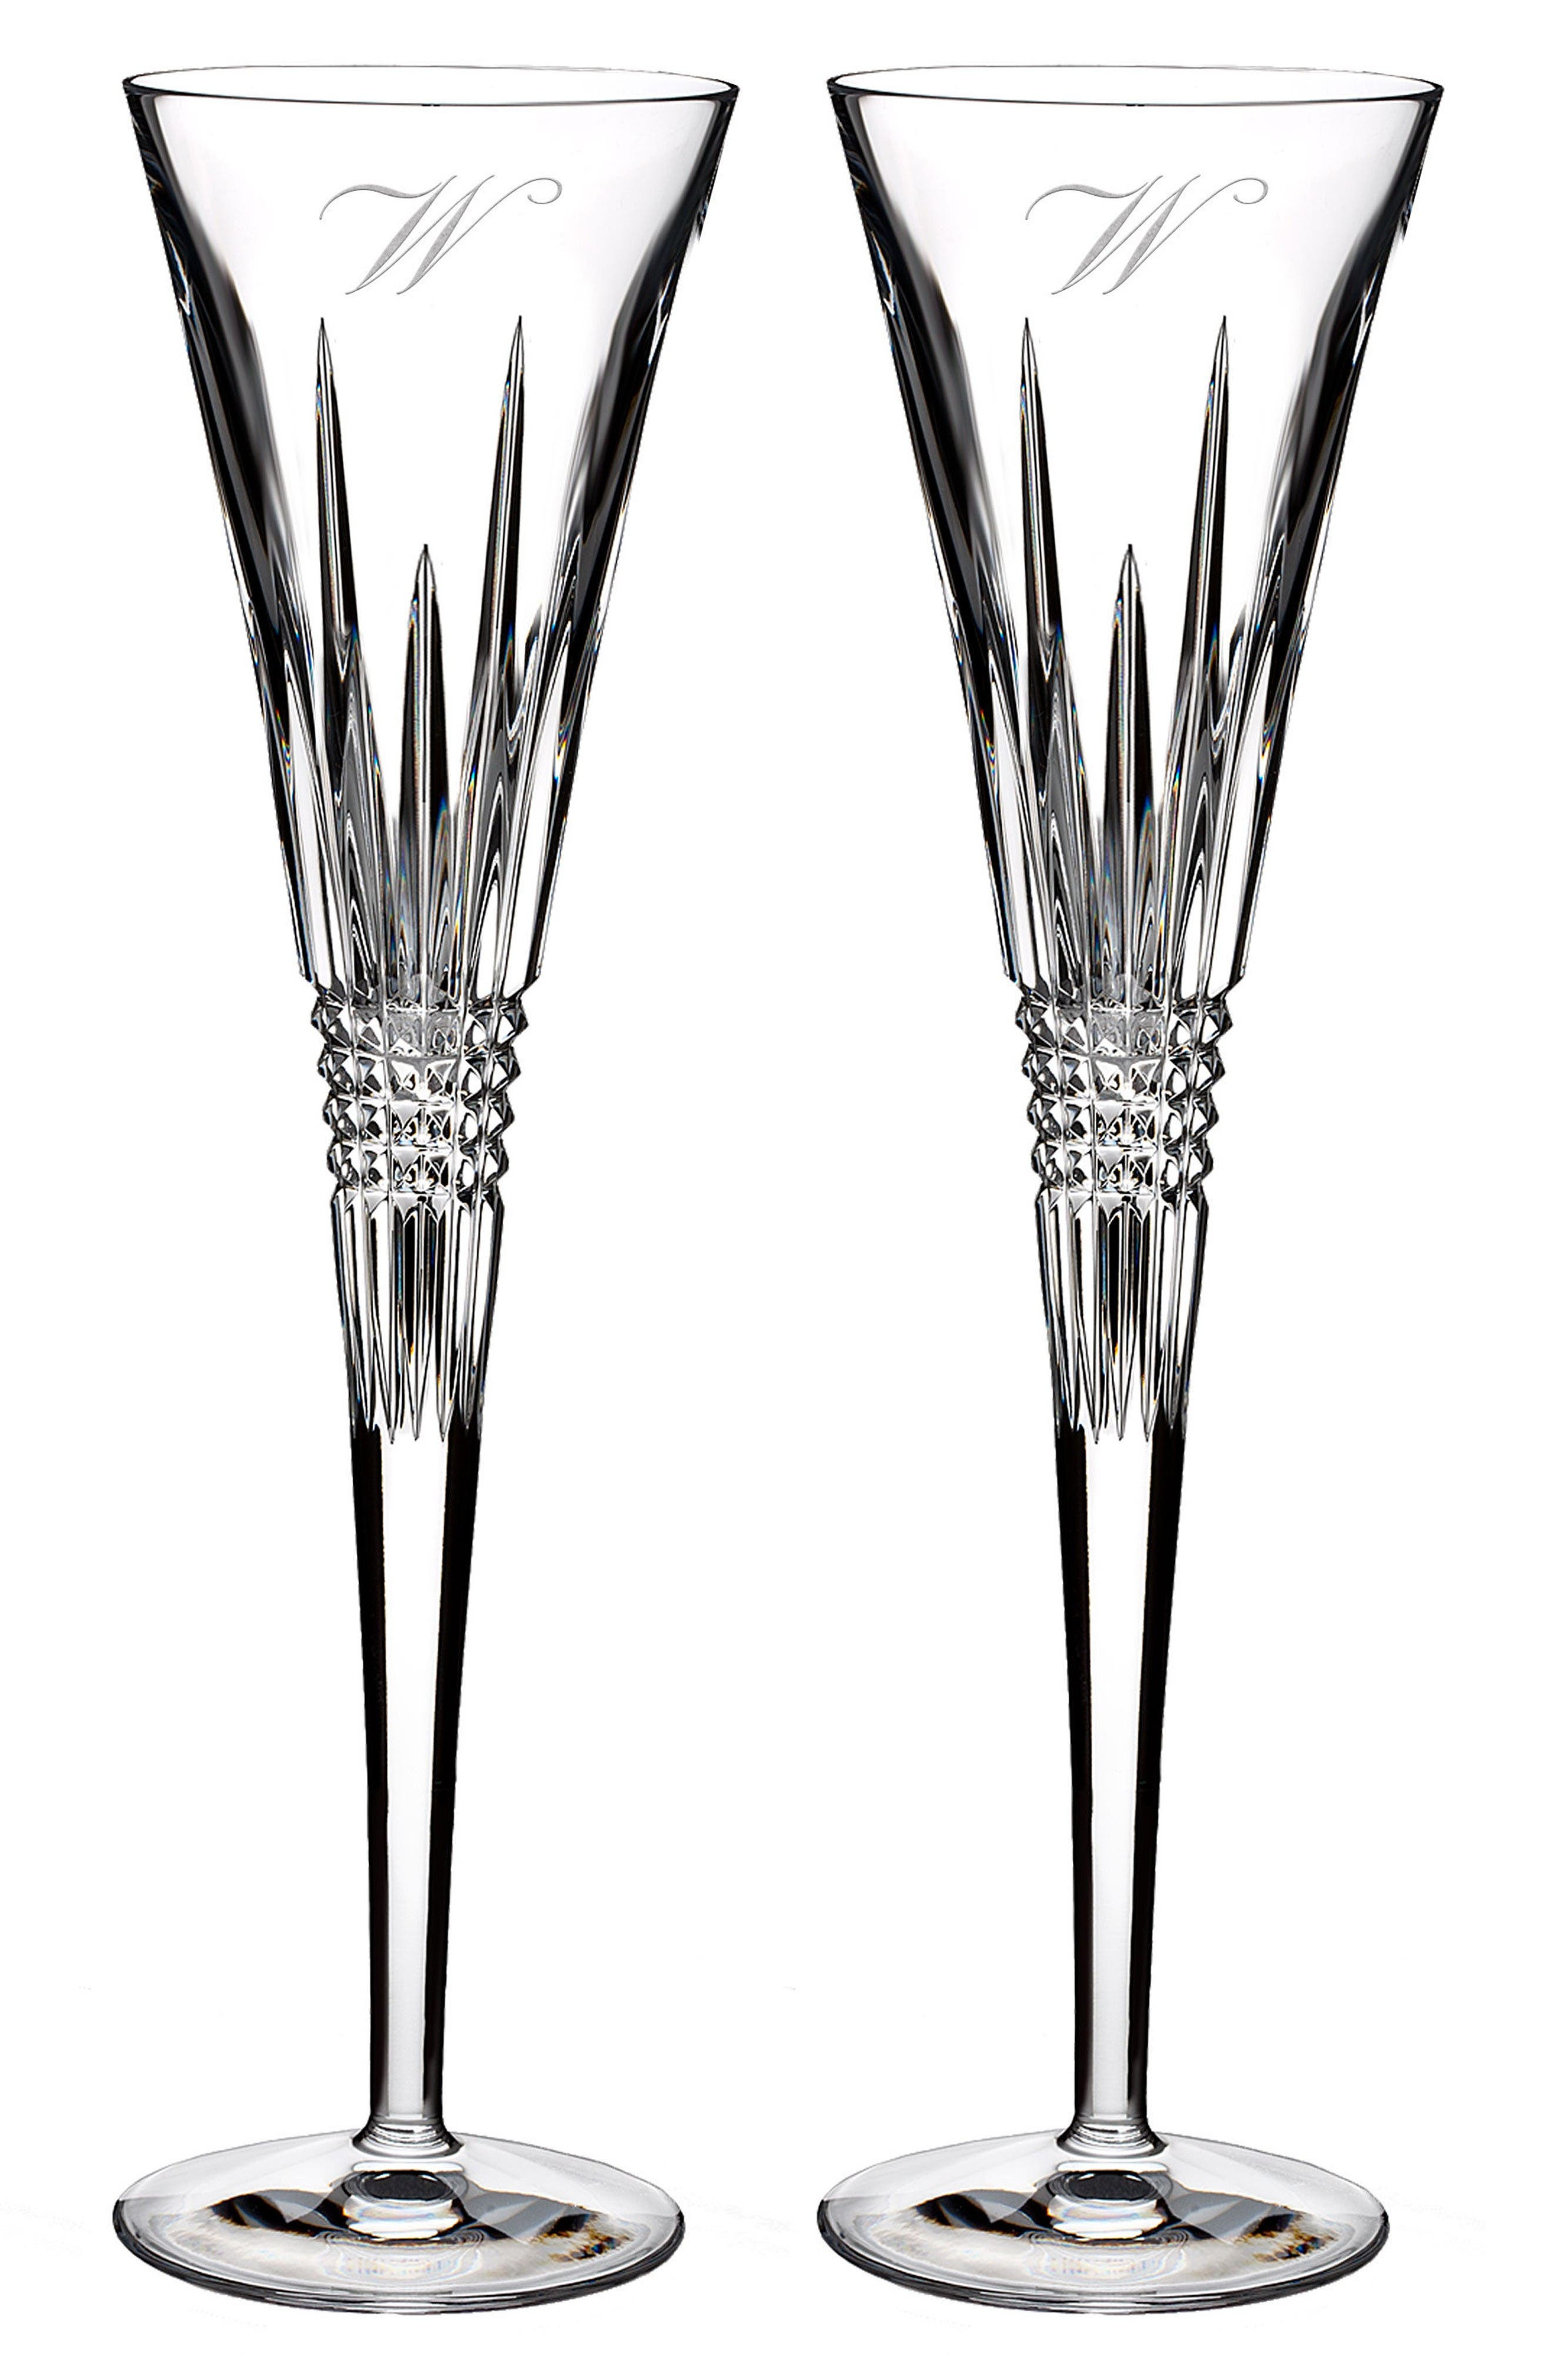 Alternate Image 1 Selected - Waterford Lismore Diamond Set of 2 Monogram Lead Crystal Champagne Flutes